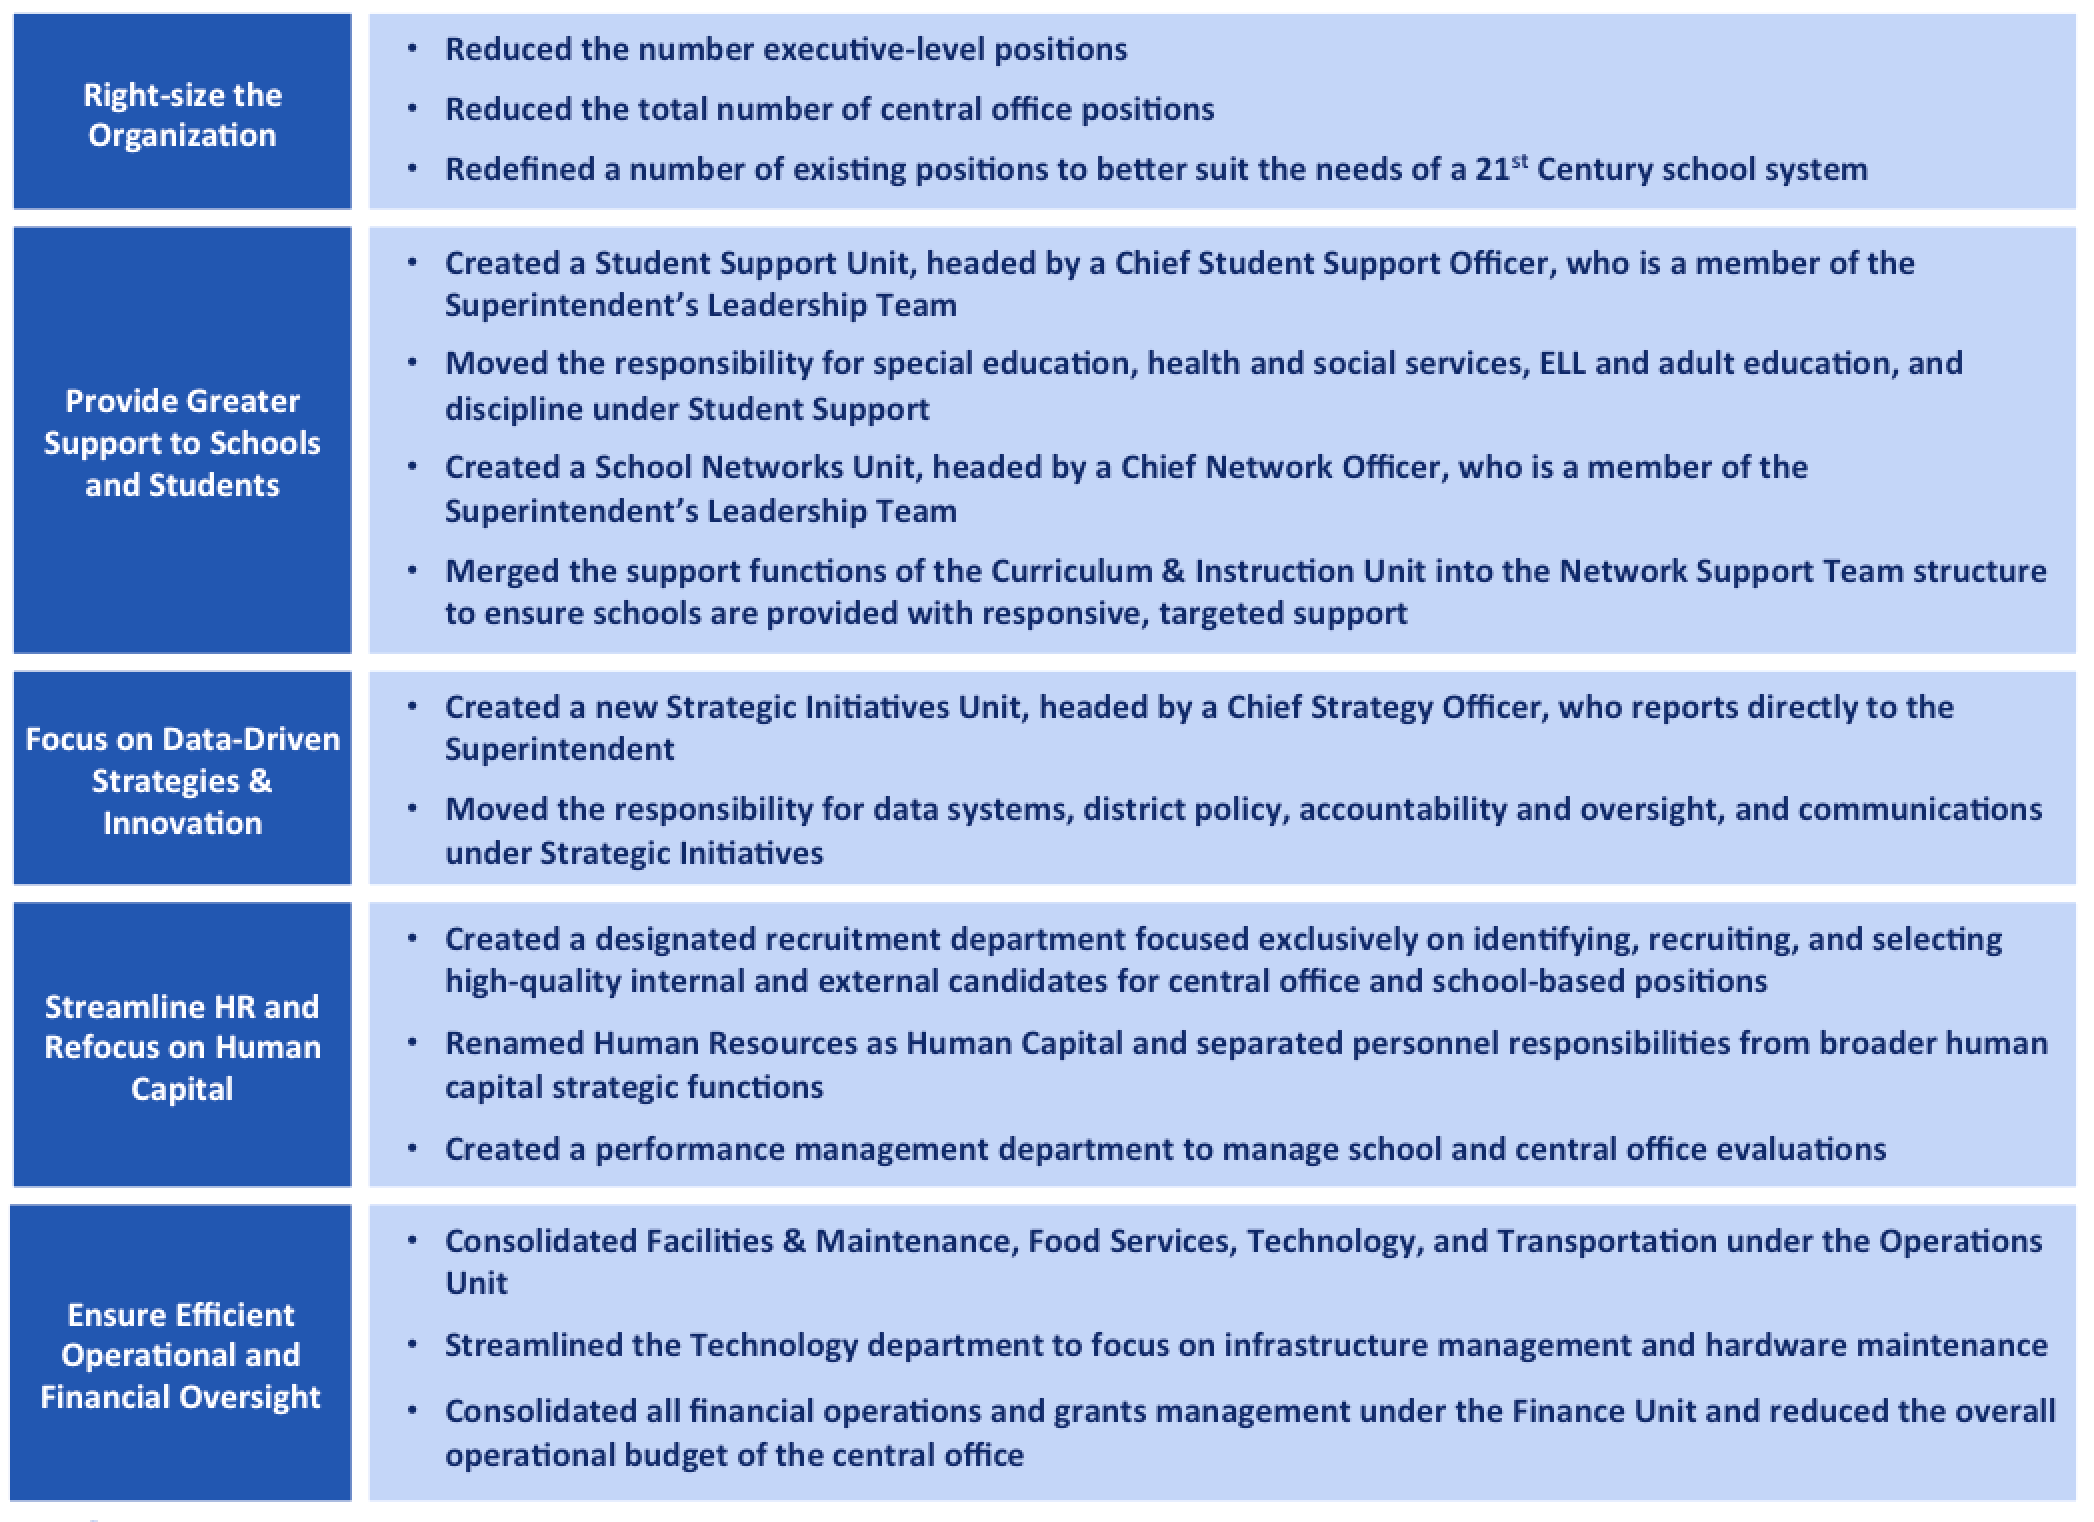 A summary of changes by focus area in the reorganization plan.